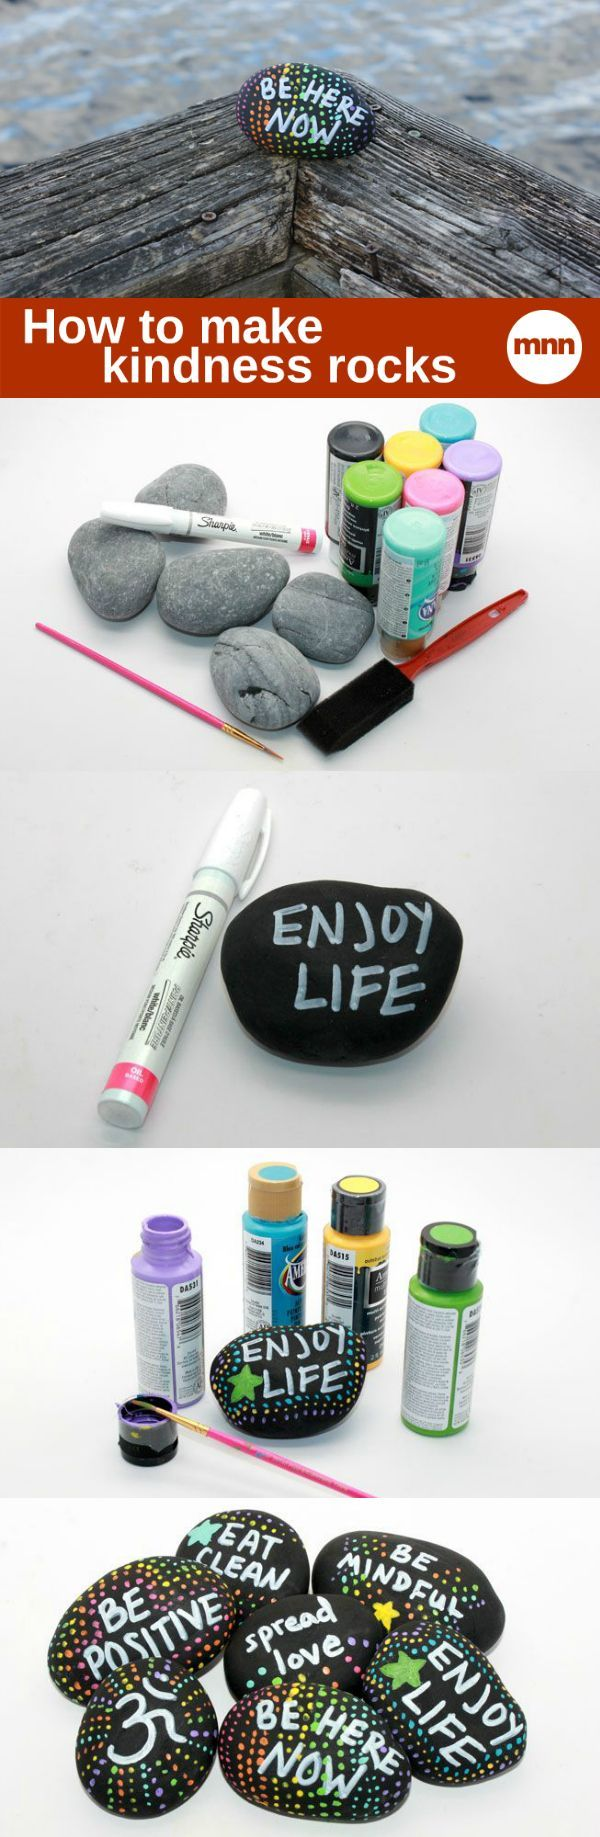 kindness rocks - find some flat stones - clean and decorate with